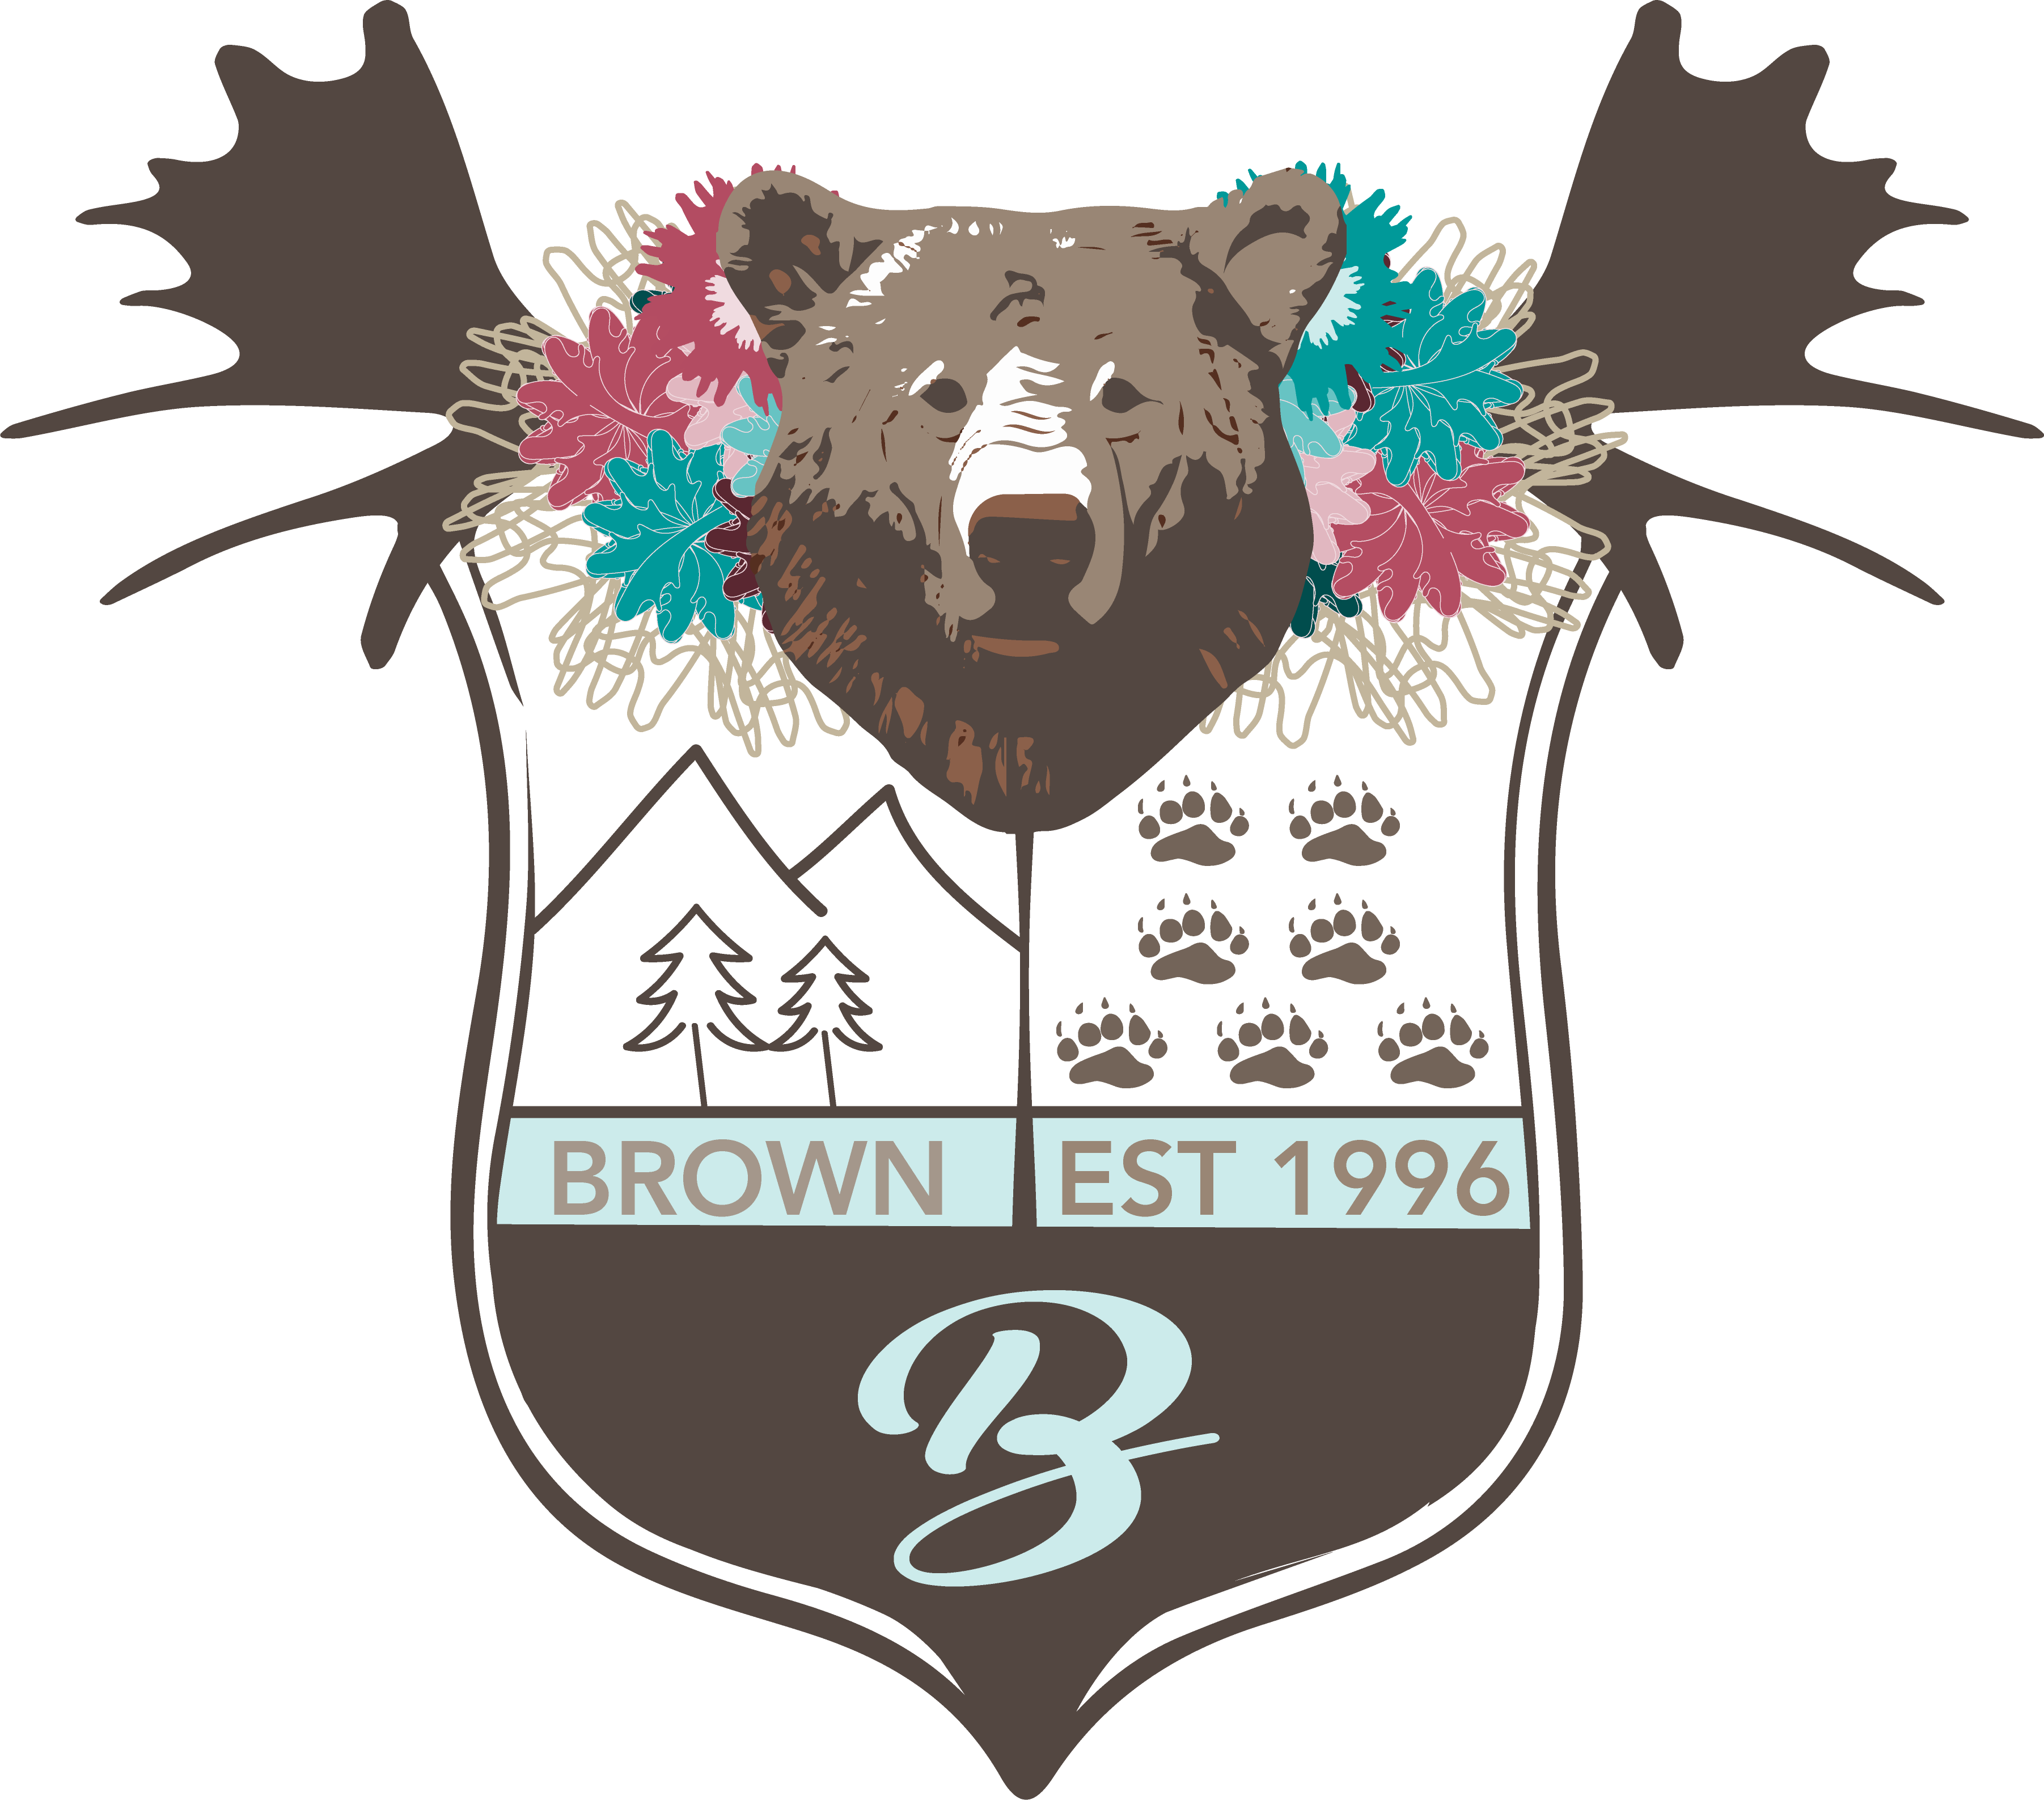 Modern family crest created by brown moose design family crest modern family crest created by brown moose design buycottarizona